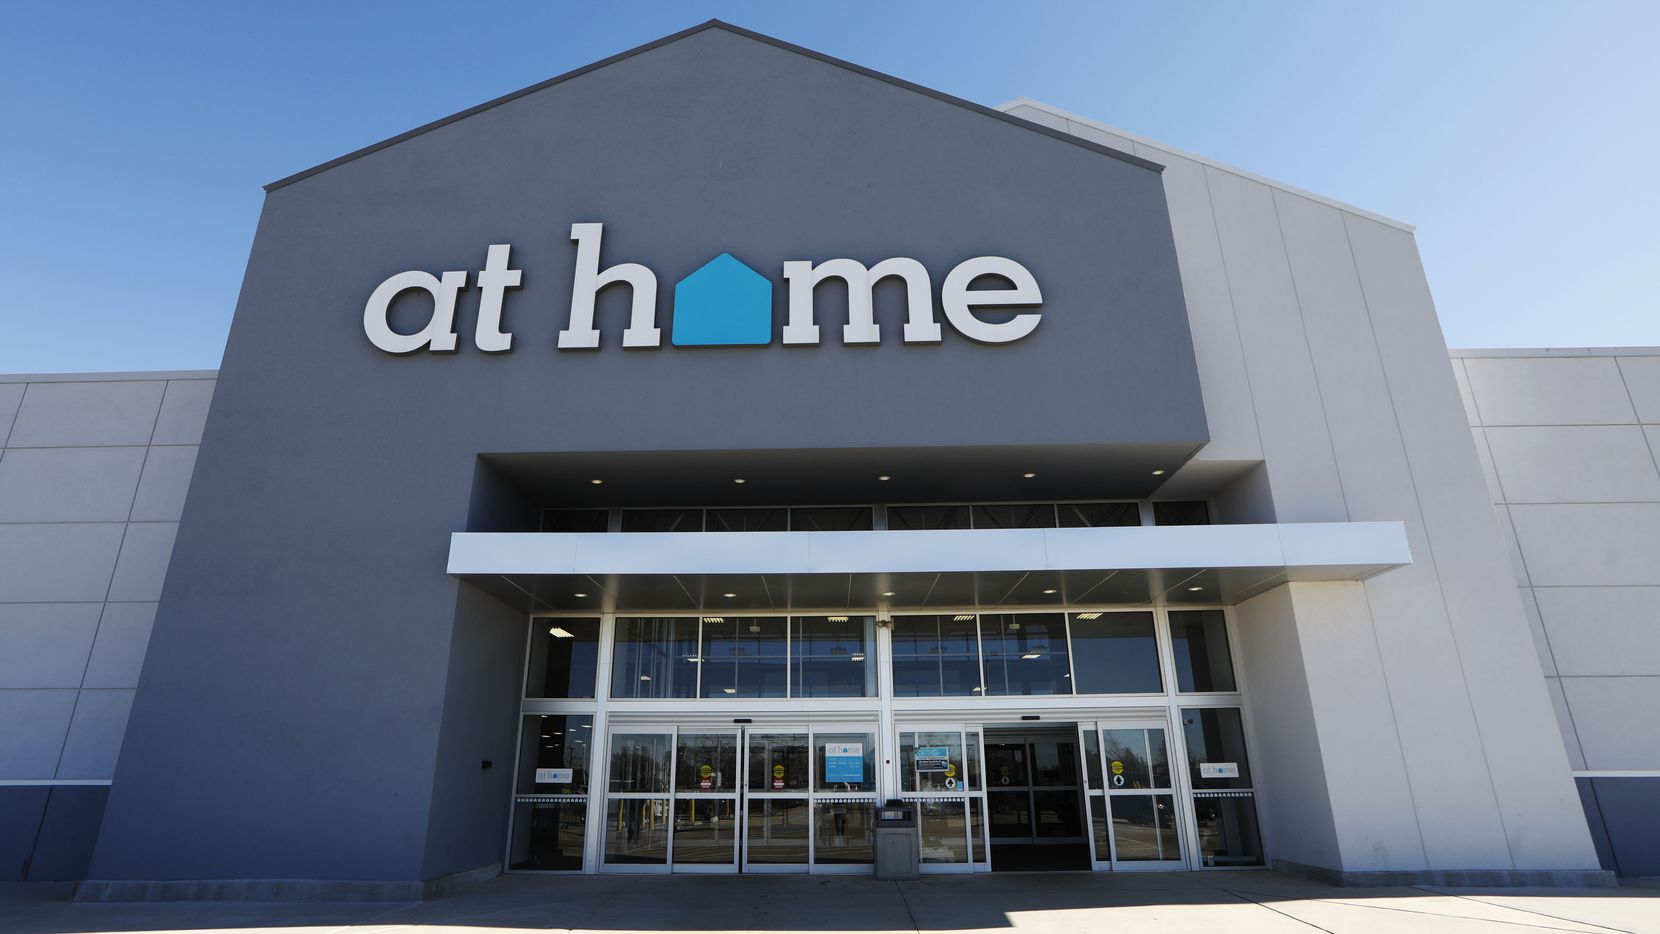 At Home's total sales increased 27.3% last year to $1.74 billion, and same-stores sales were up 19.4%.